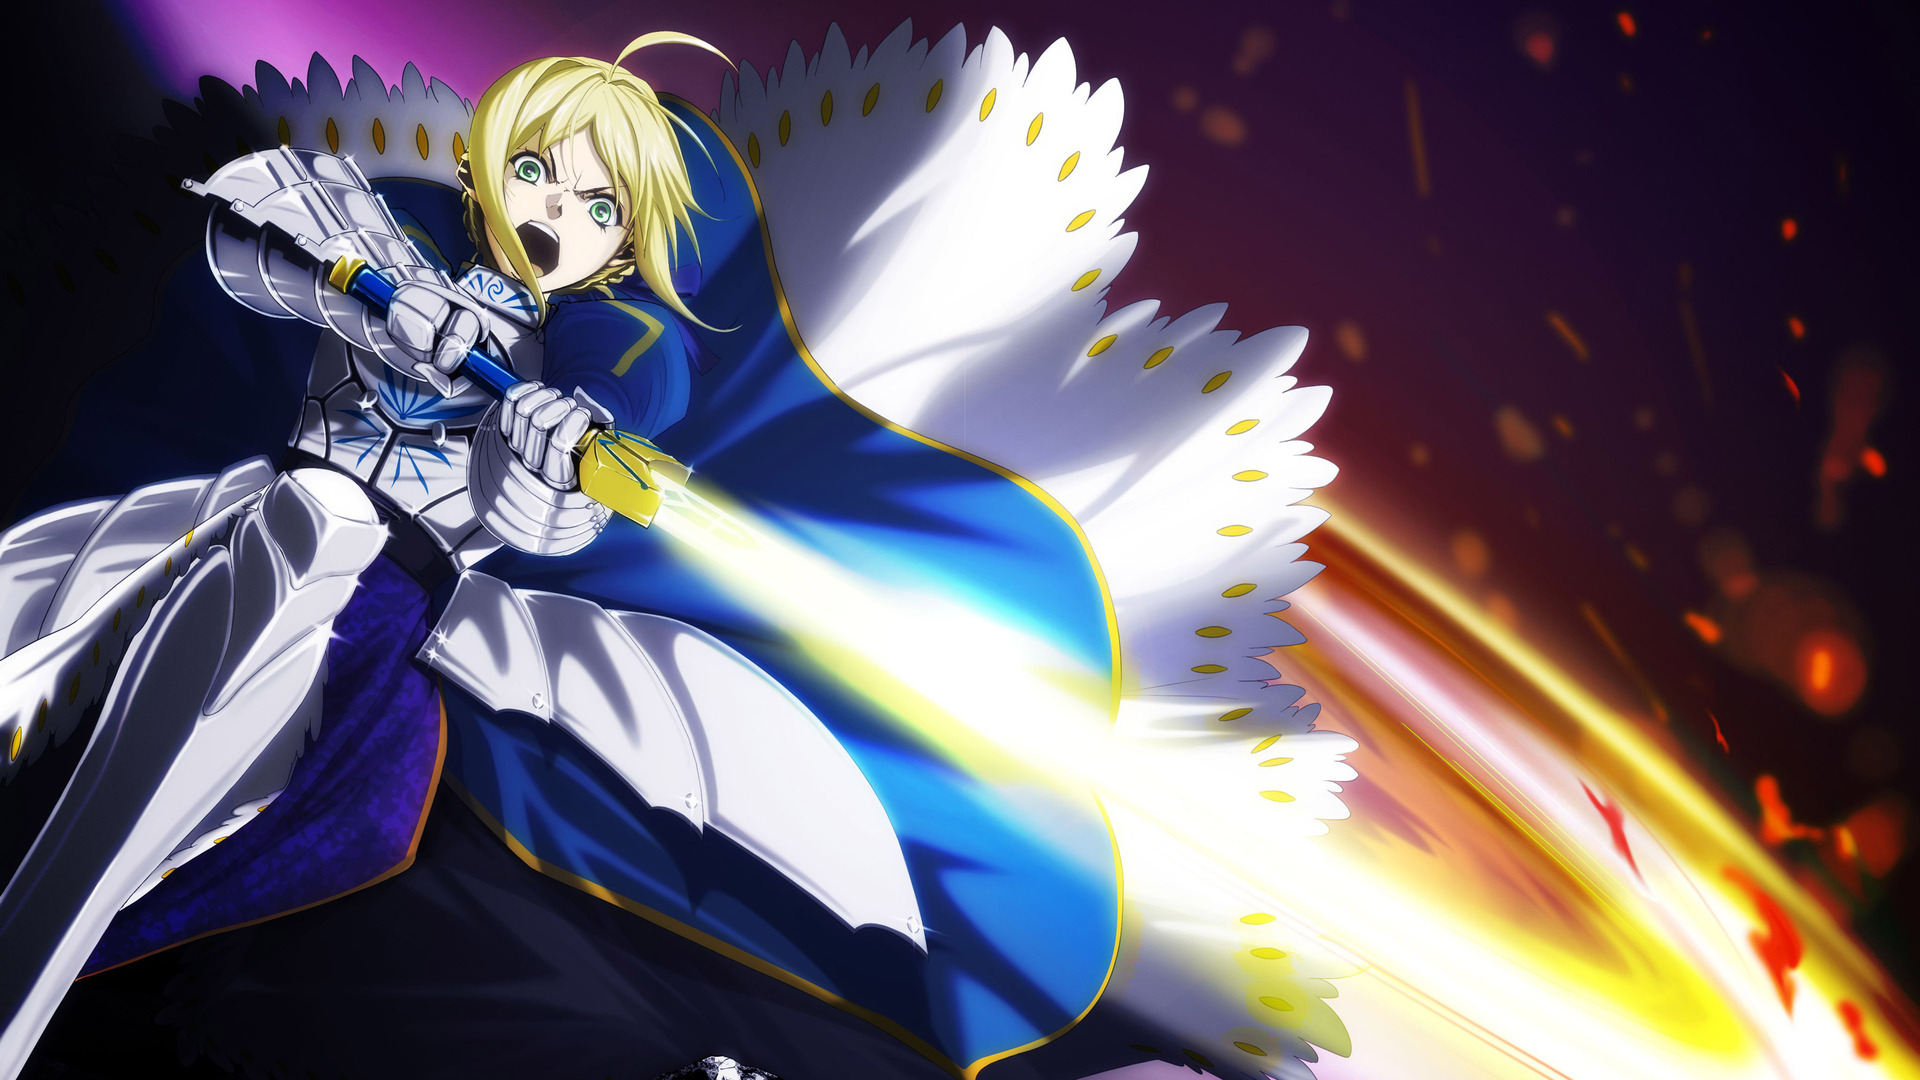 Fatestay night   Saber wallpaper 1920x1080